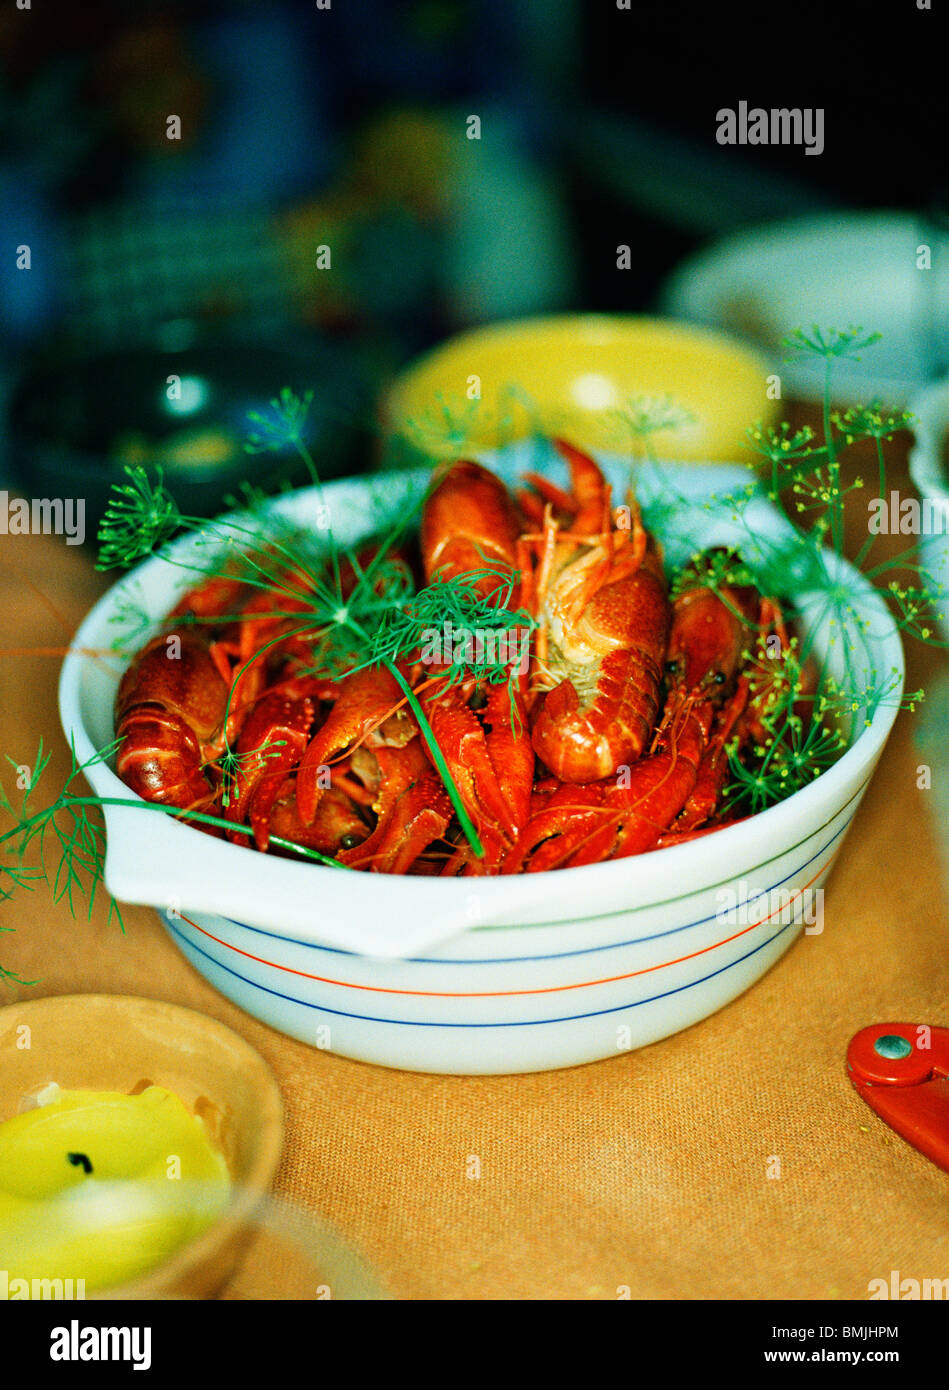 Crayfish in a bowl, Sweden. - Stock Image